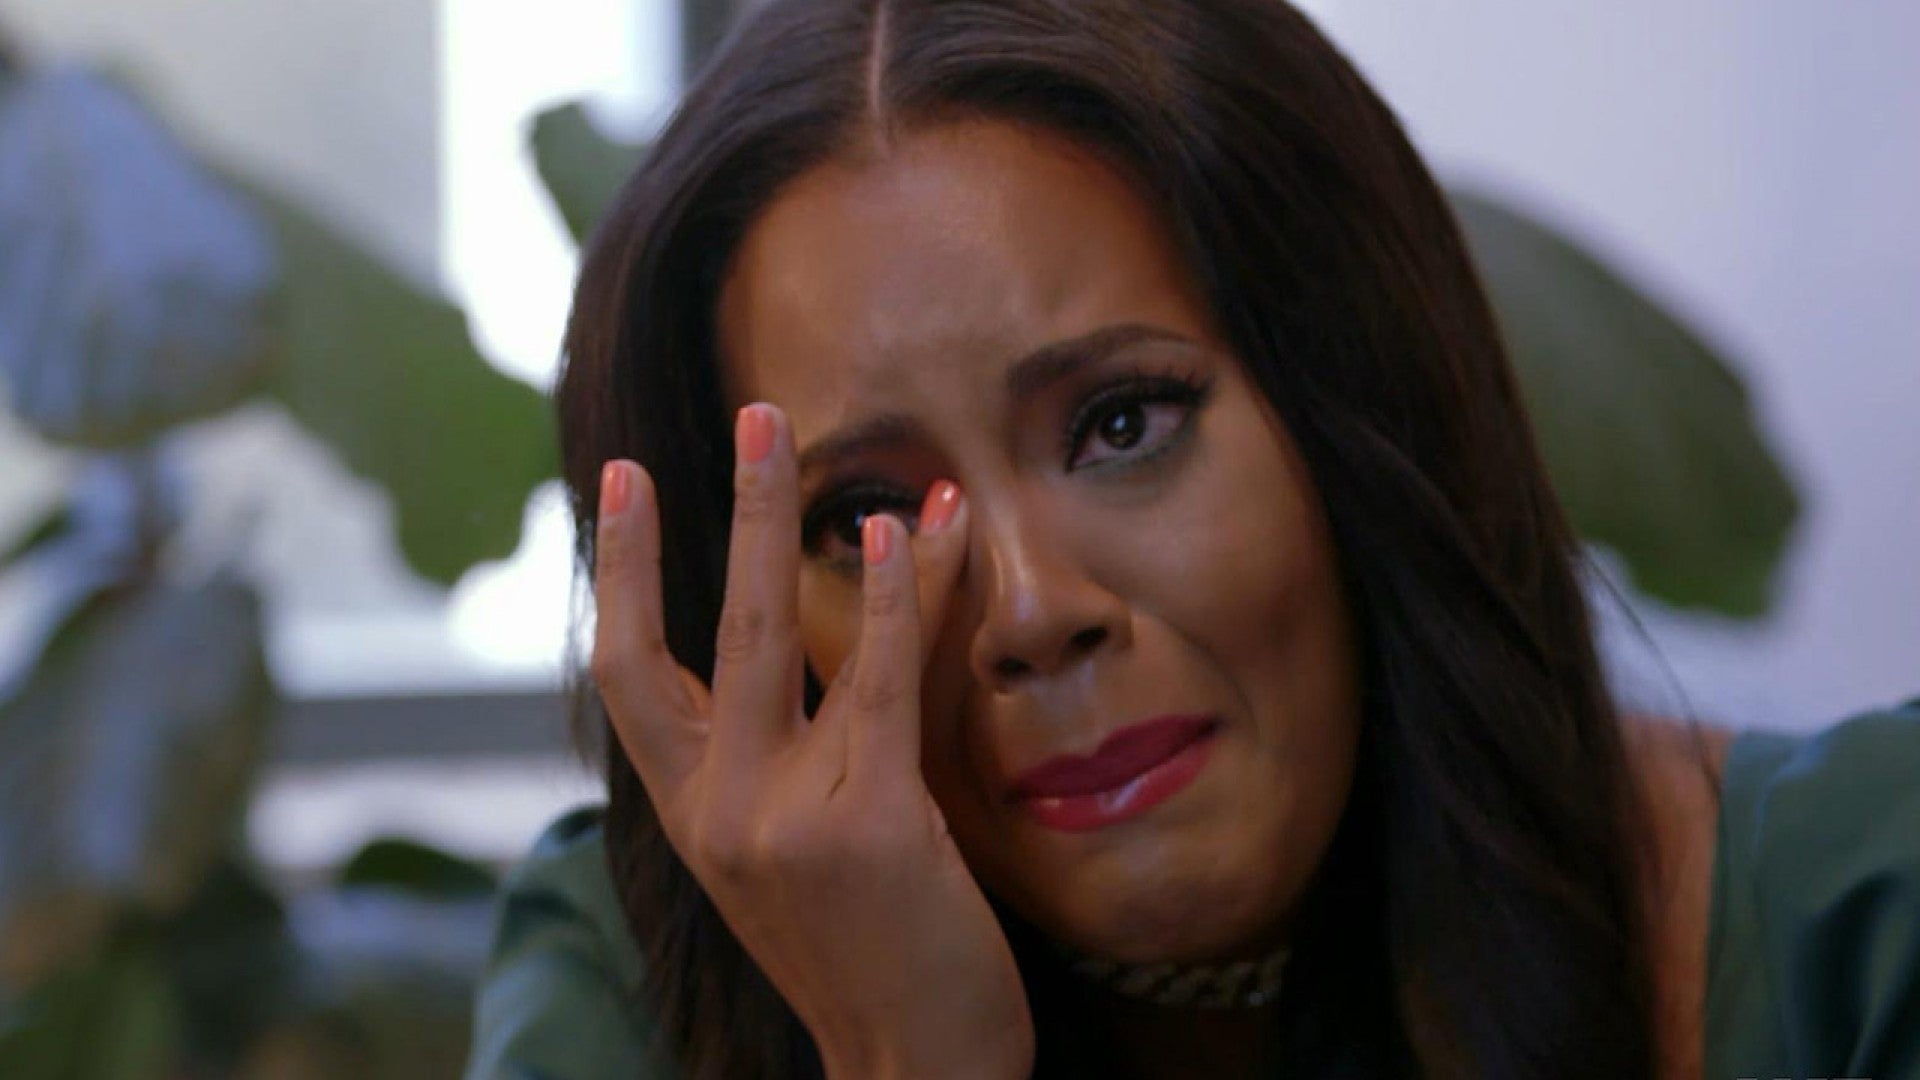 Angela Simmons Breaks Down After Her 3 Year Old Son Questions Her About His Late Father Exclusive Entertainment Tonight